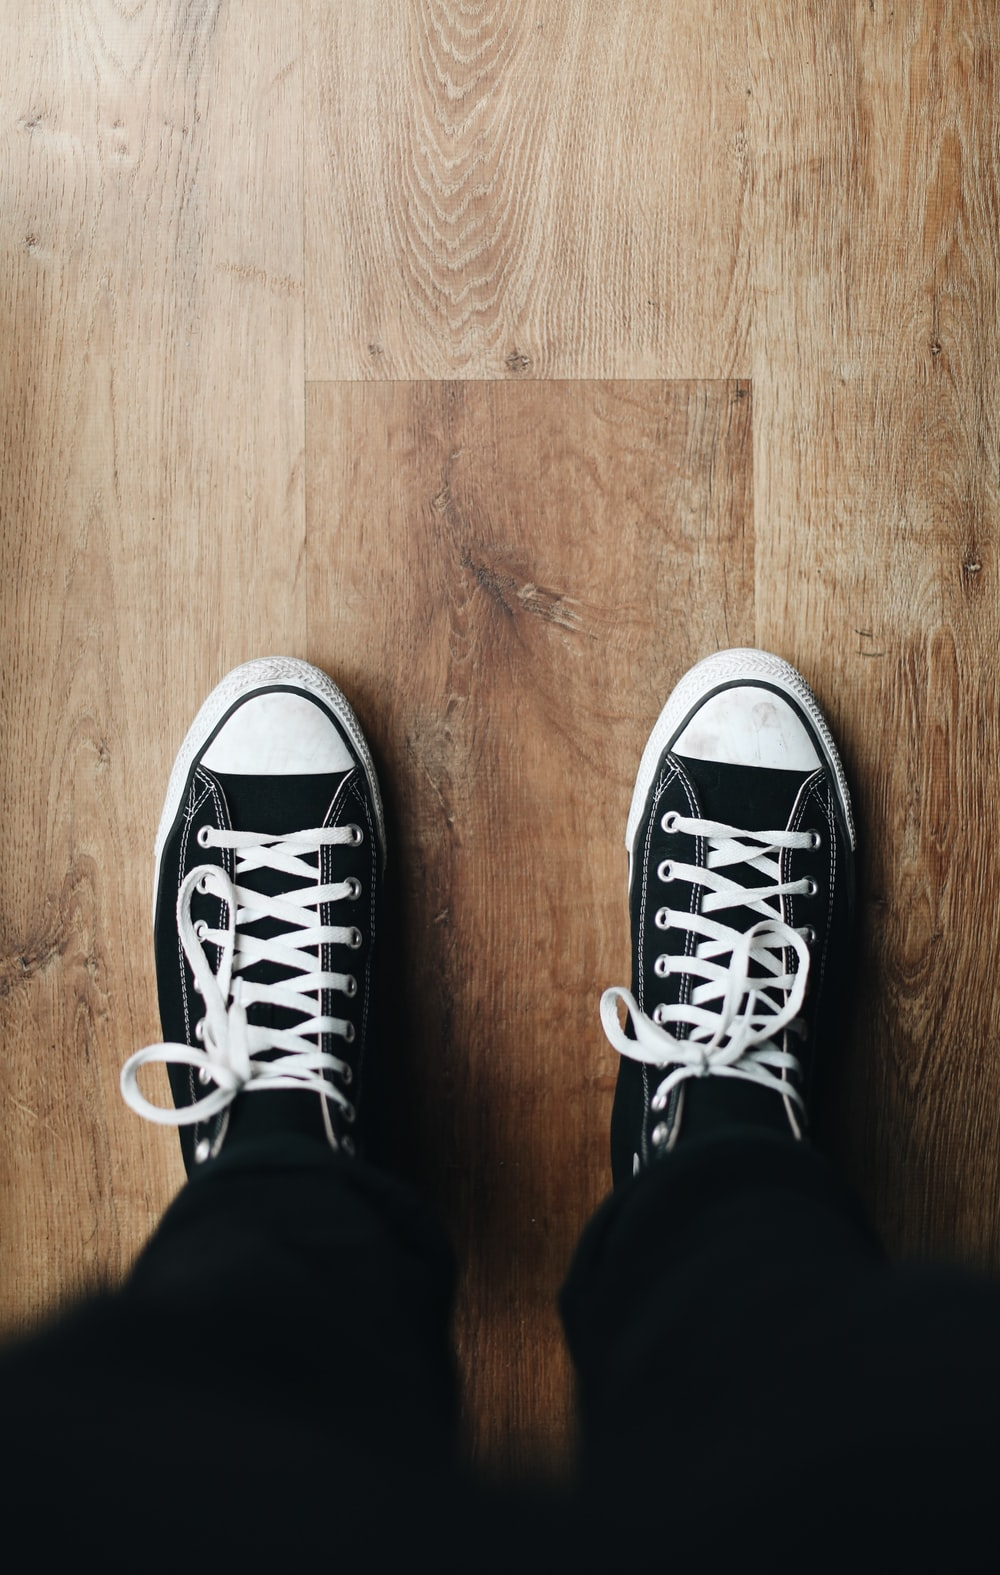 person wearing black and white converse all star sneakers